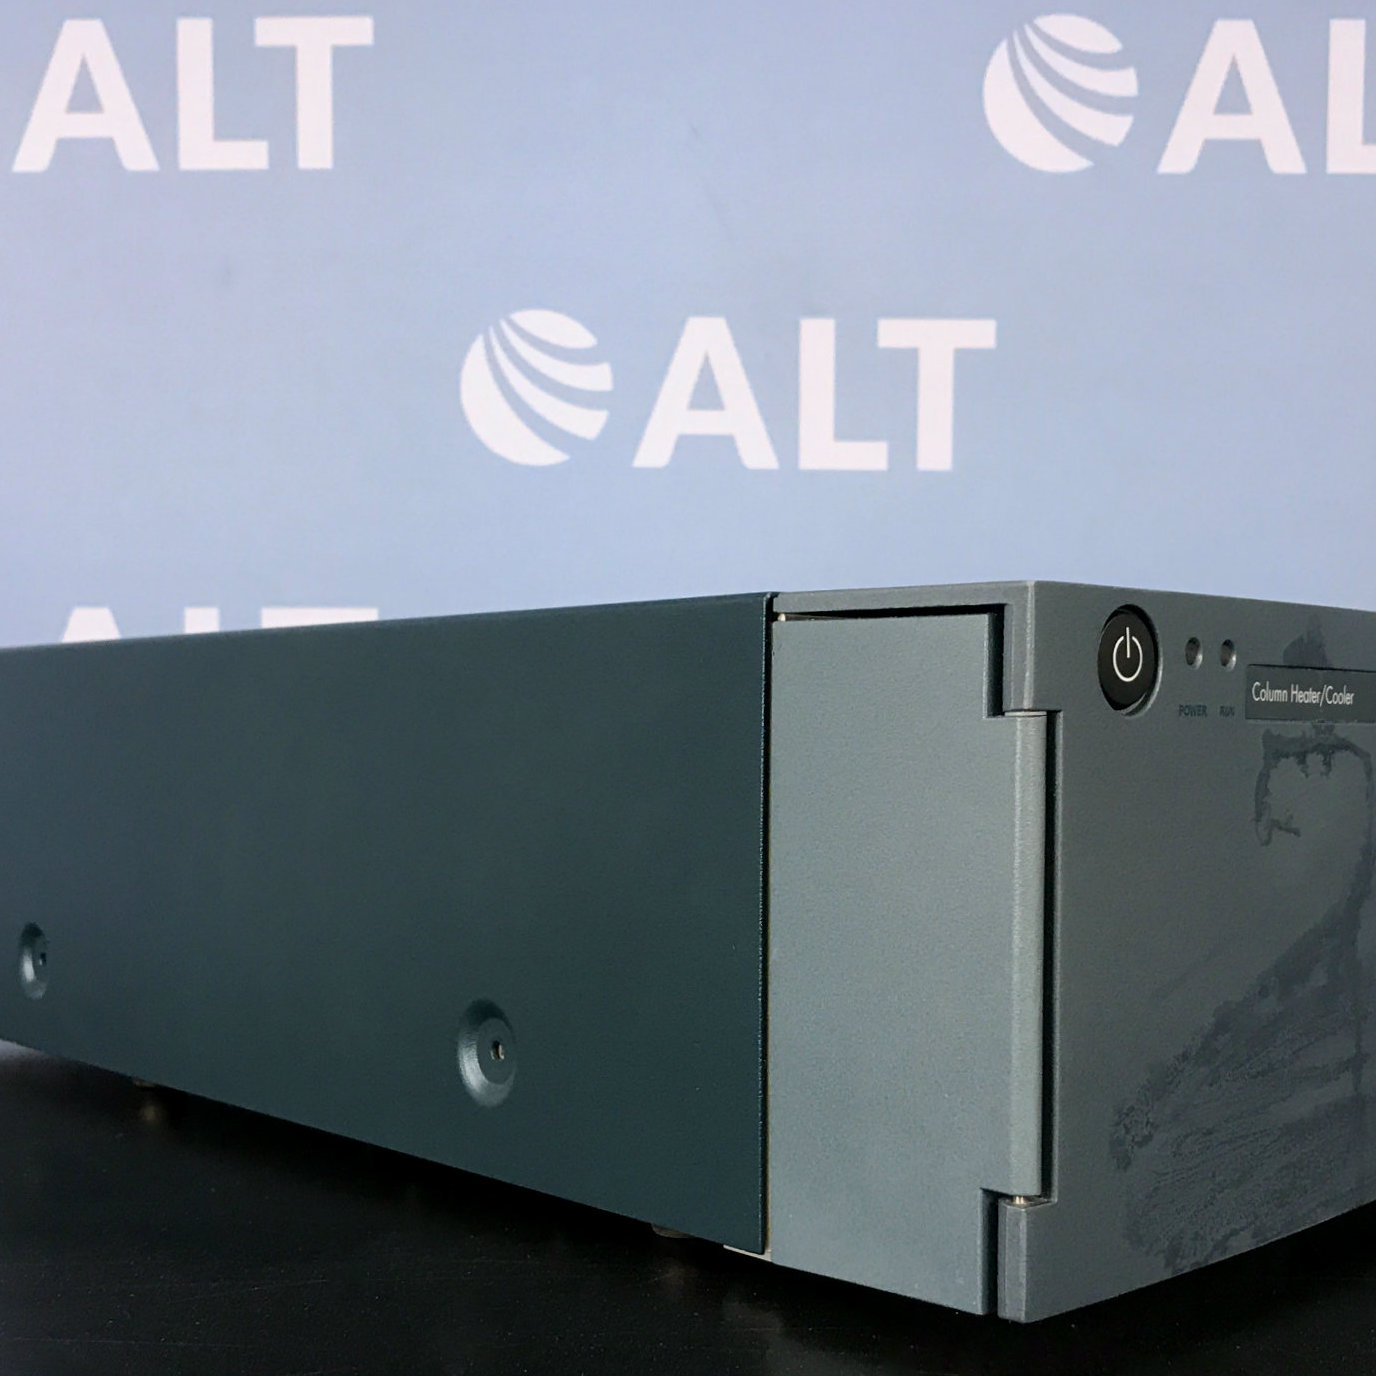 Waters Acquity UPLC Column Heater/Cooler Image